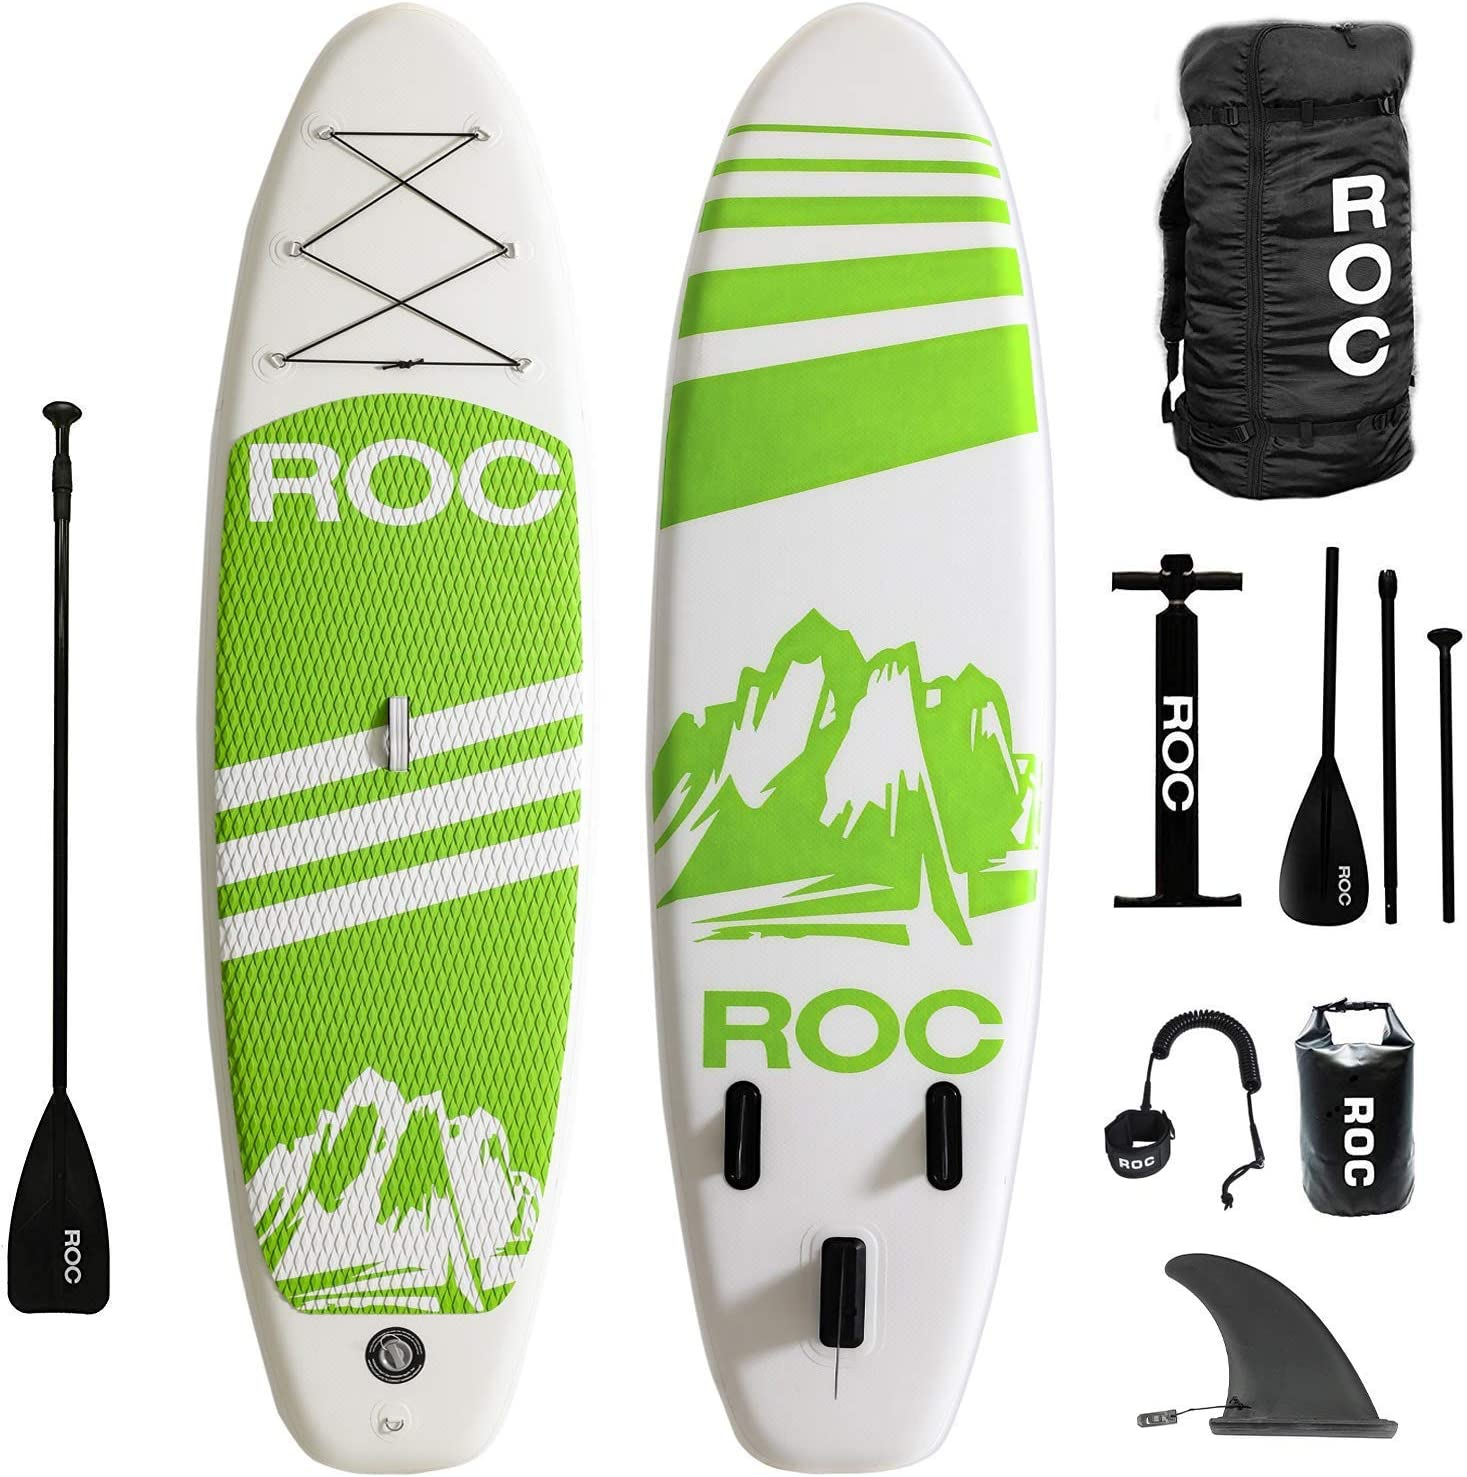 Roc Inflatable Stand Up Paddle Boards W Free Premium SUP Accessories Backpack, Non-Slip Deck Bonus Waterproof Bag, Leash, Paddle and Hand Pump Youth Adult Renewed